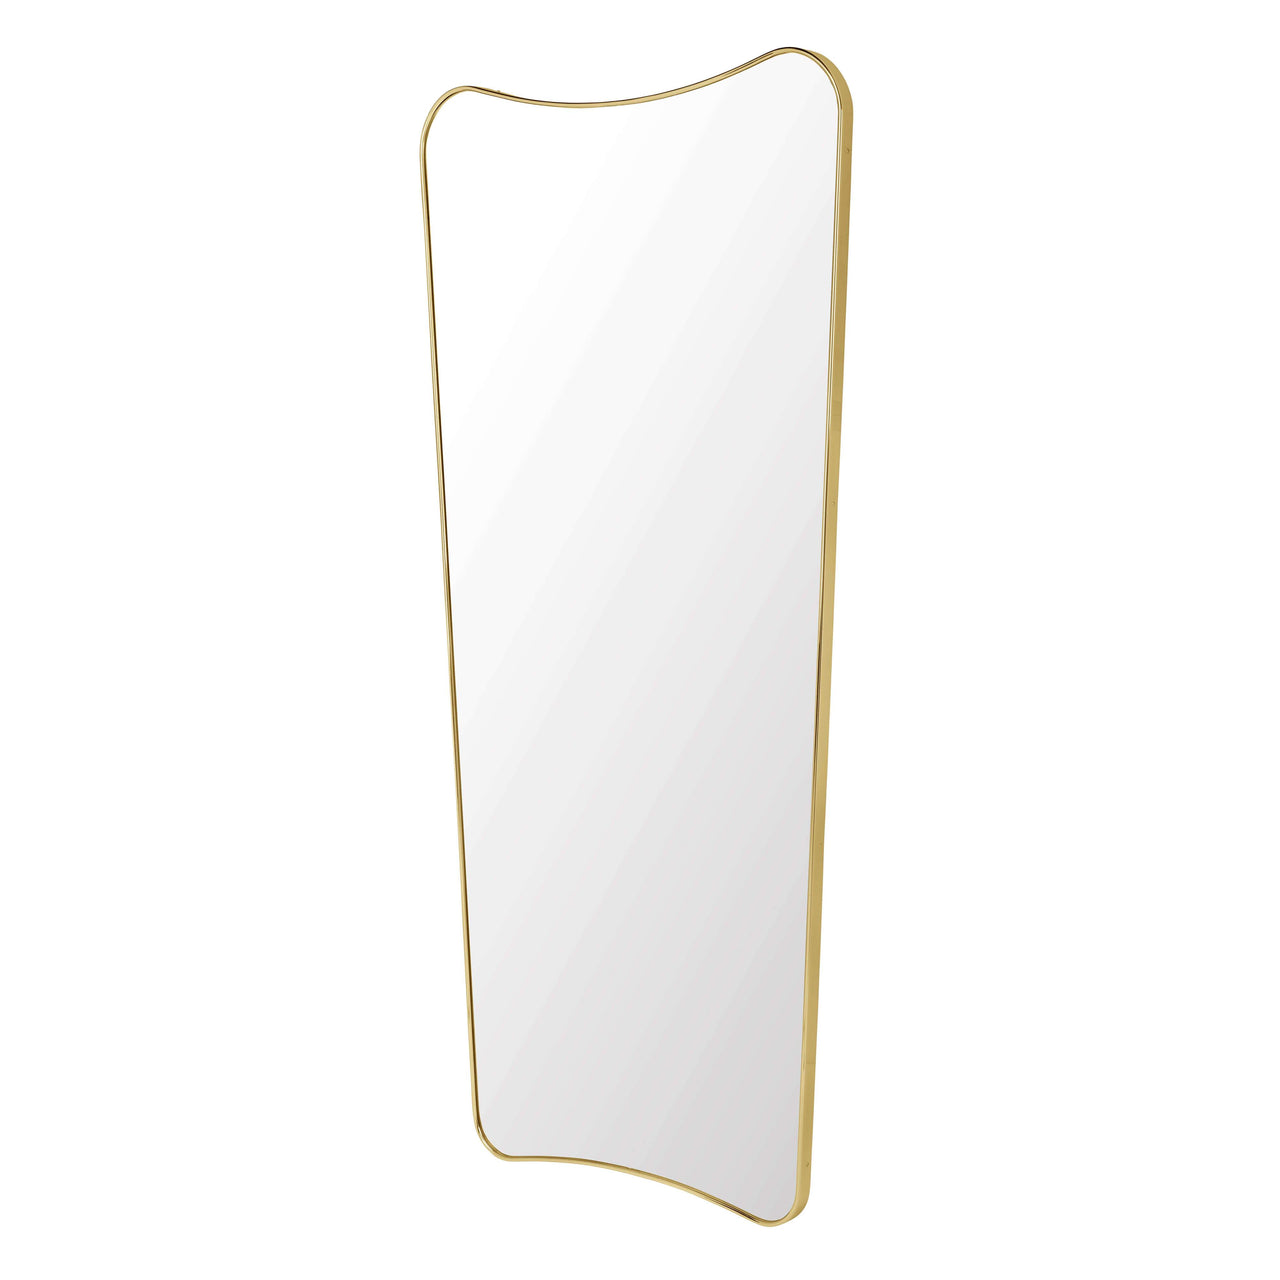 F.A. 33 Rectangular Wall Mirror: Large + Polished Brass